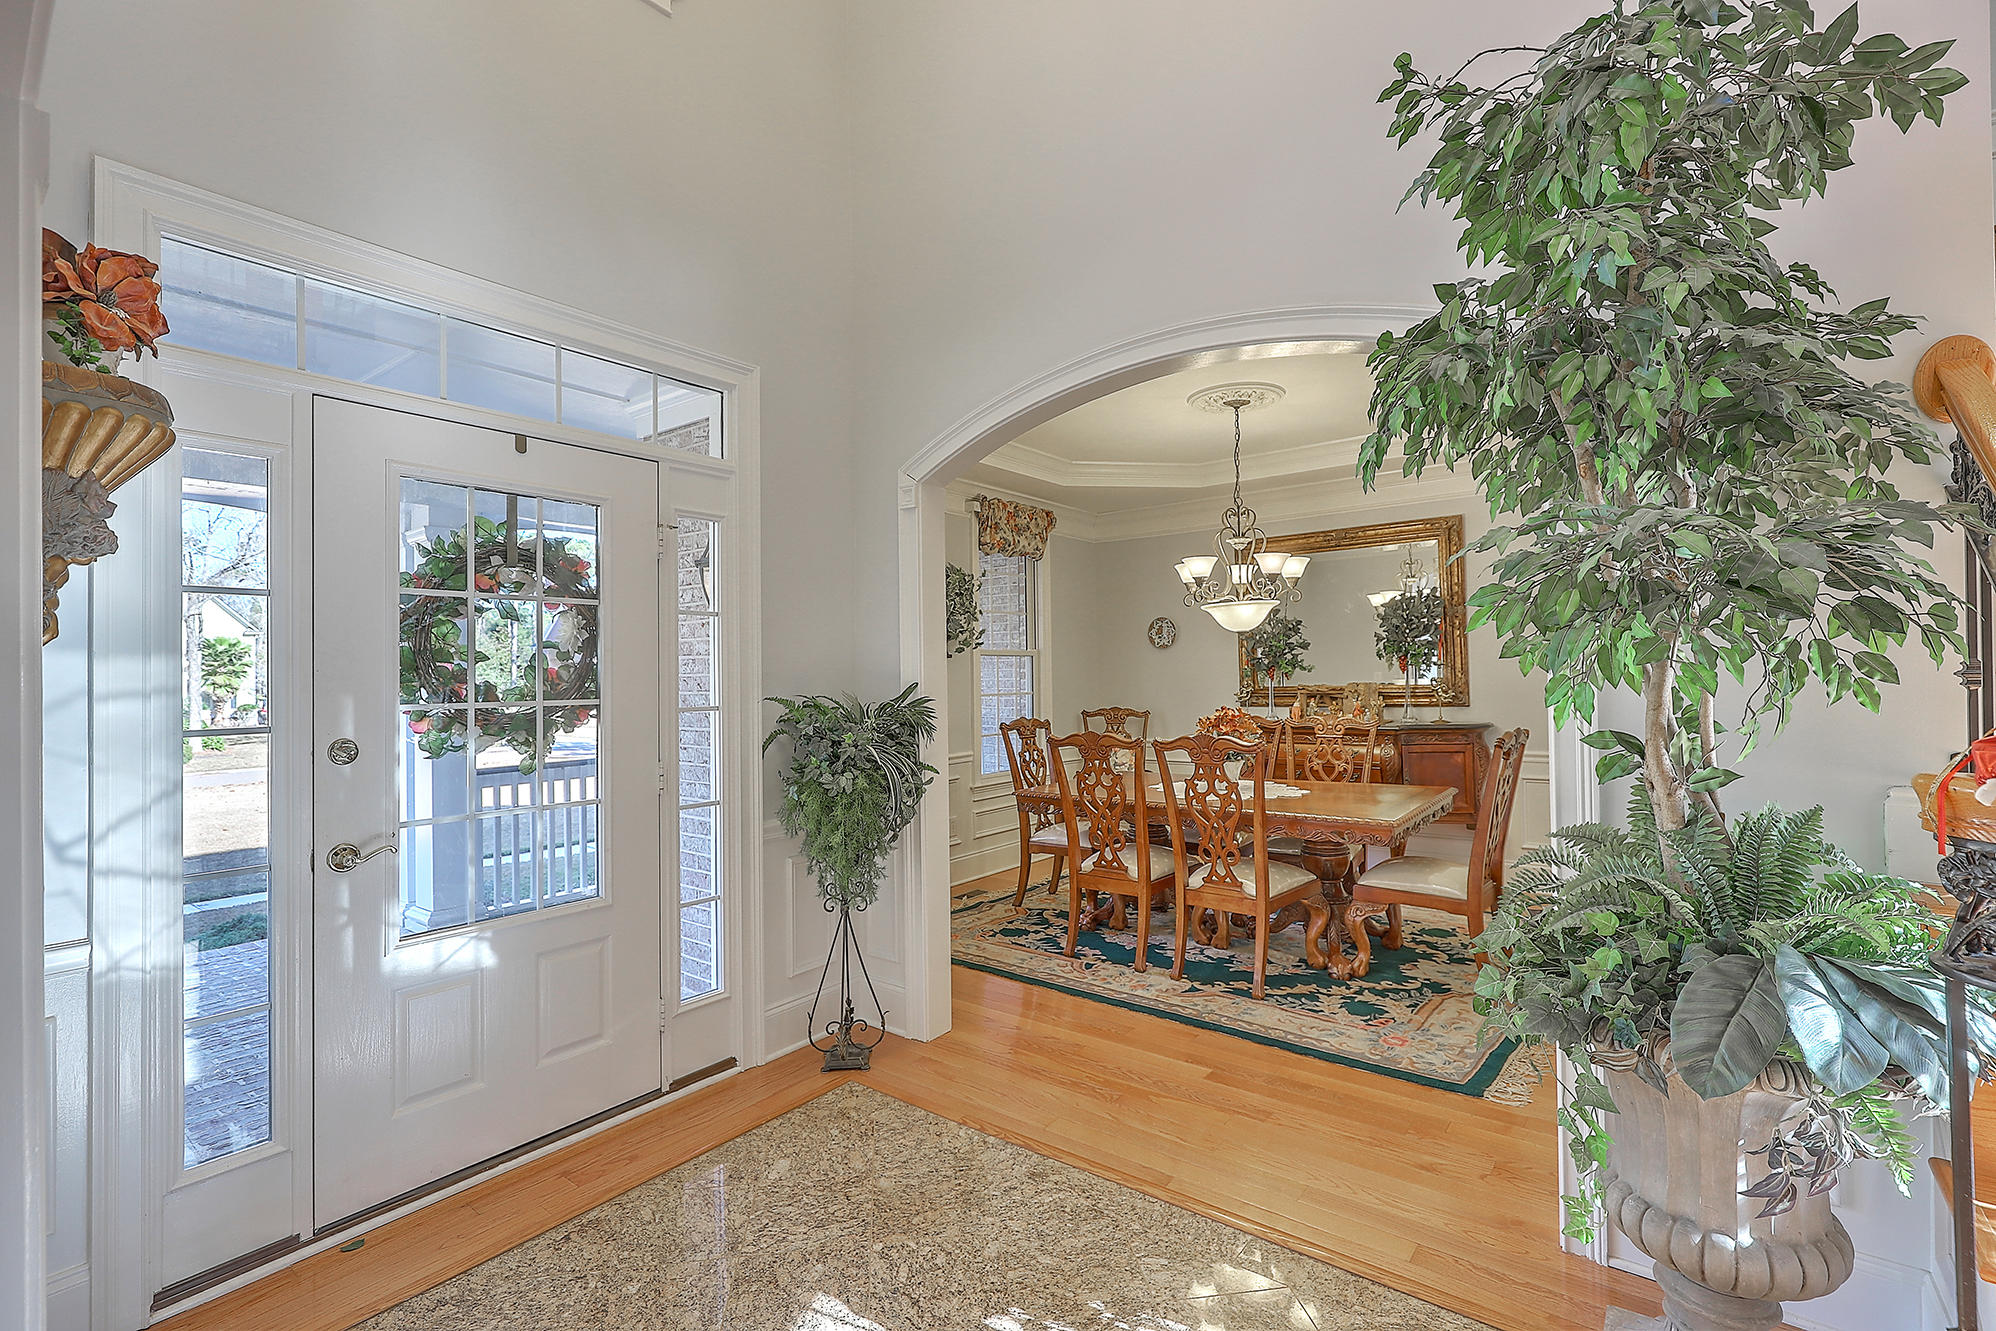 Dunes West Homes For Sale - 1784 Shell Ring Circle, Mount Pleasant, SC - 9